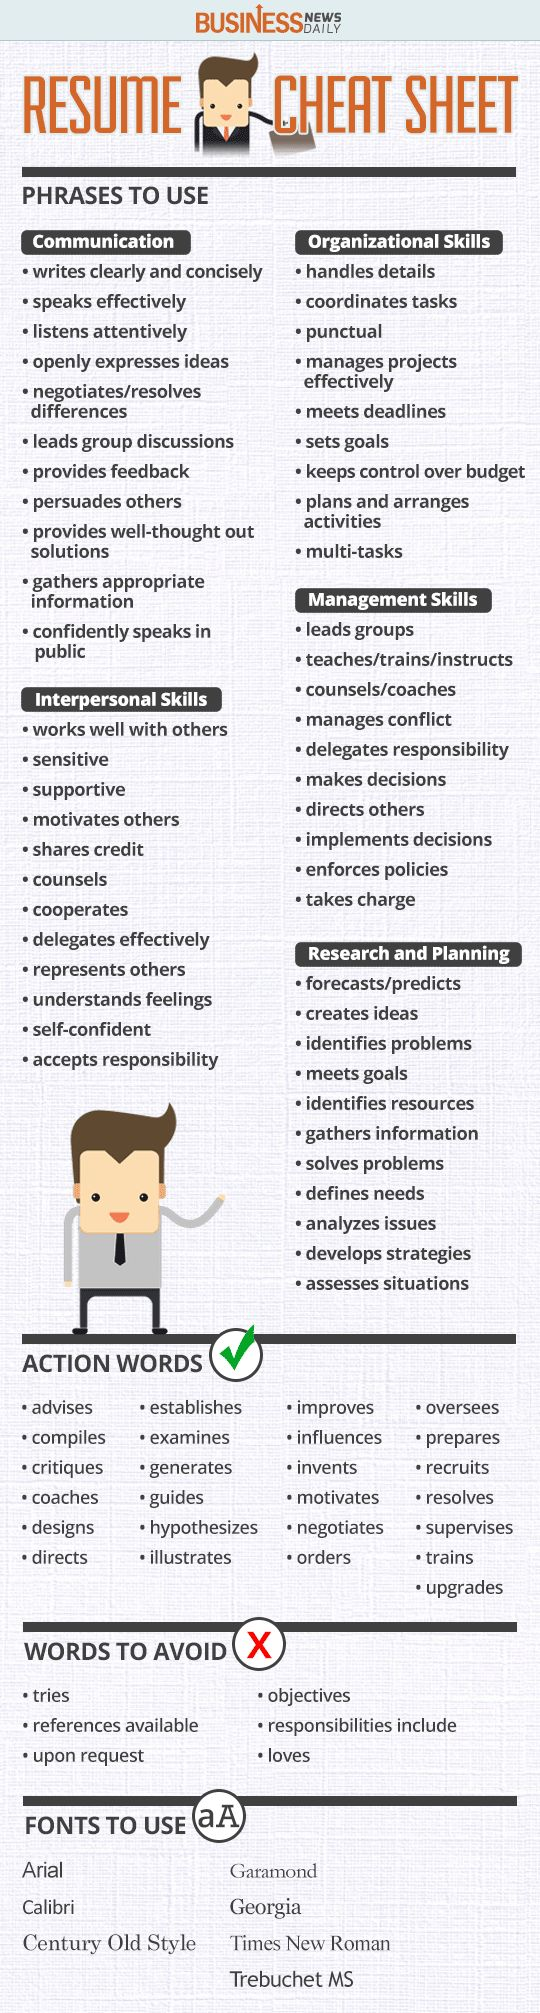 Opposenewapstandardsus  Mesmerizing  Ideas About Resume On Pinterest  Cv Format Resume Cv And  With Engaging Resume Cheat Sheet Infographic Andrews Almost Done With A Complete Unit On Employment Which With Appealing Bullet Points In Resume Also Beta Gamma Sigma Resume In Addition Sample Sales Manager Resume And Furniture Sales Resume As Well As Fast Paced Environment Resume Additionally Resume For Event Coordinator From Pinterestcom With Opposenewapstandardsus  Engaging  Ideas About Resume On Pinterest  Cv Format Resume Cv And  With Appealing Resume Cheat Sheet Infographic Andrews Almost Done With A Complete Unit On Employment Which And Mesmerizing Bullet Points In Resume Also Beta Gamma Sigma Resume In Addition Sample Sales Manager Resume From Pinterestcom